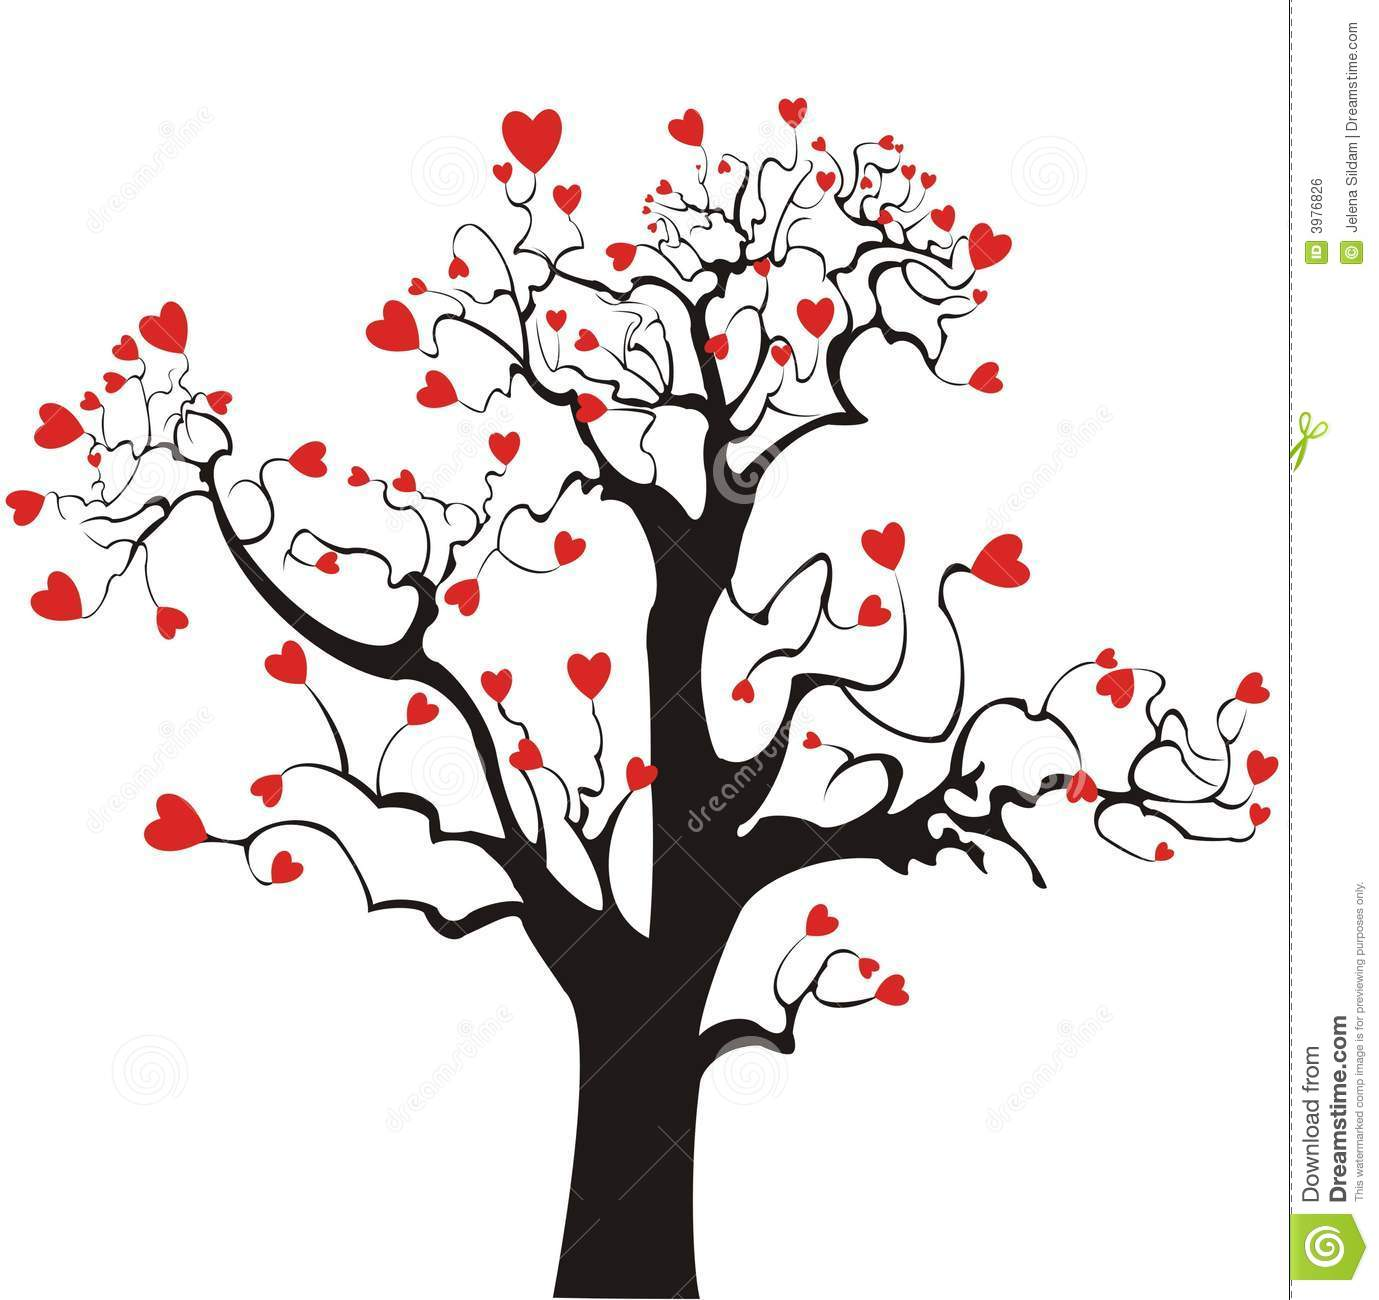 Red Love Hearts On Tree Royalty Free Stock Image - Image ...